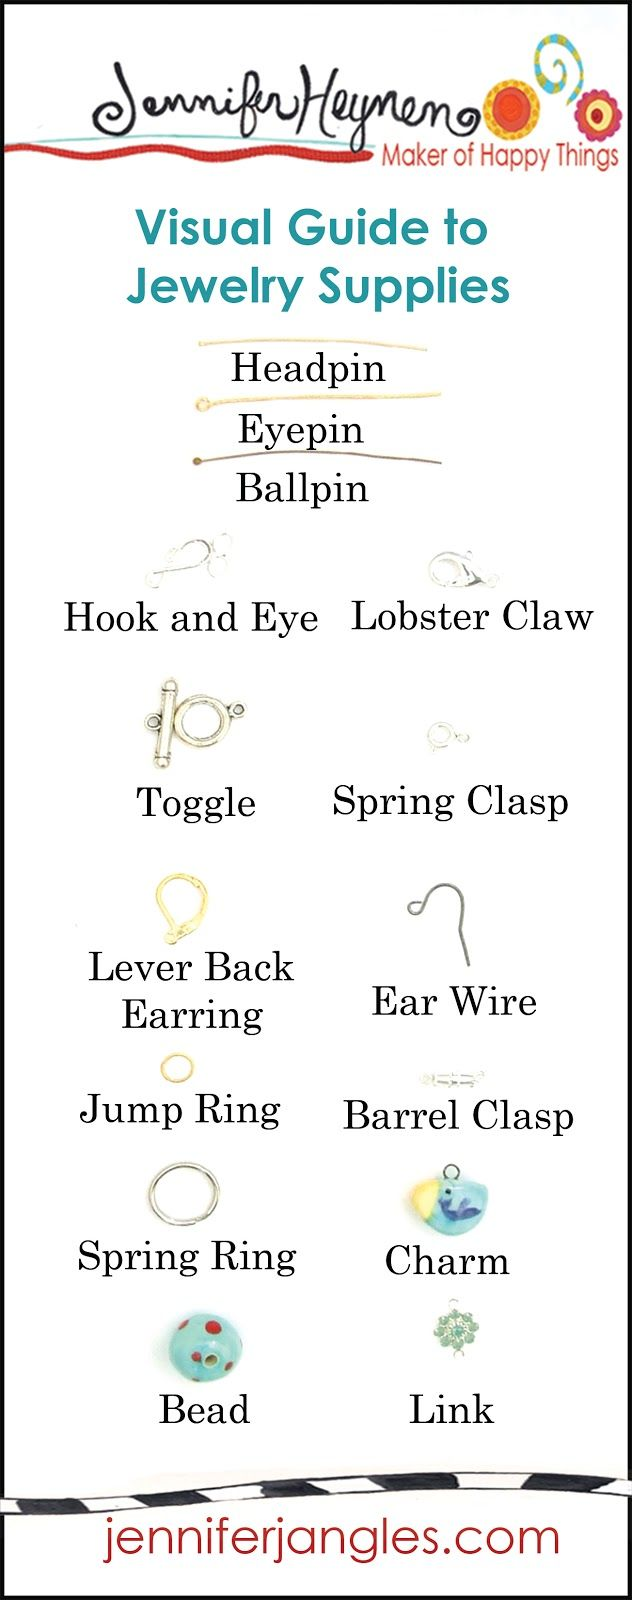 Jennifer+Heynen+Visual+Guide+to+Jewelry+Making+Supplies+Printable.jpg 632×1,600 pixels